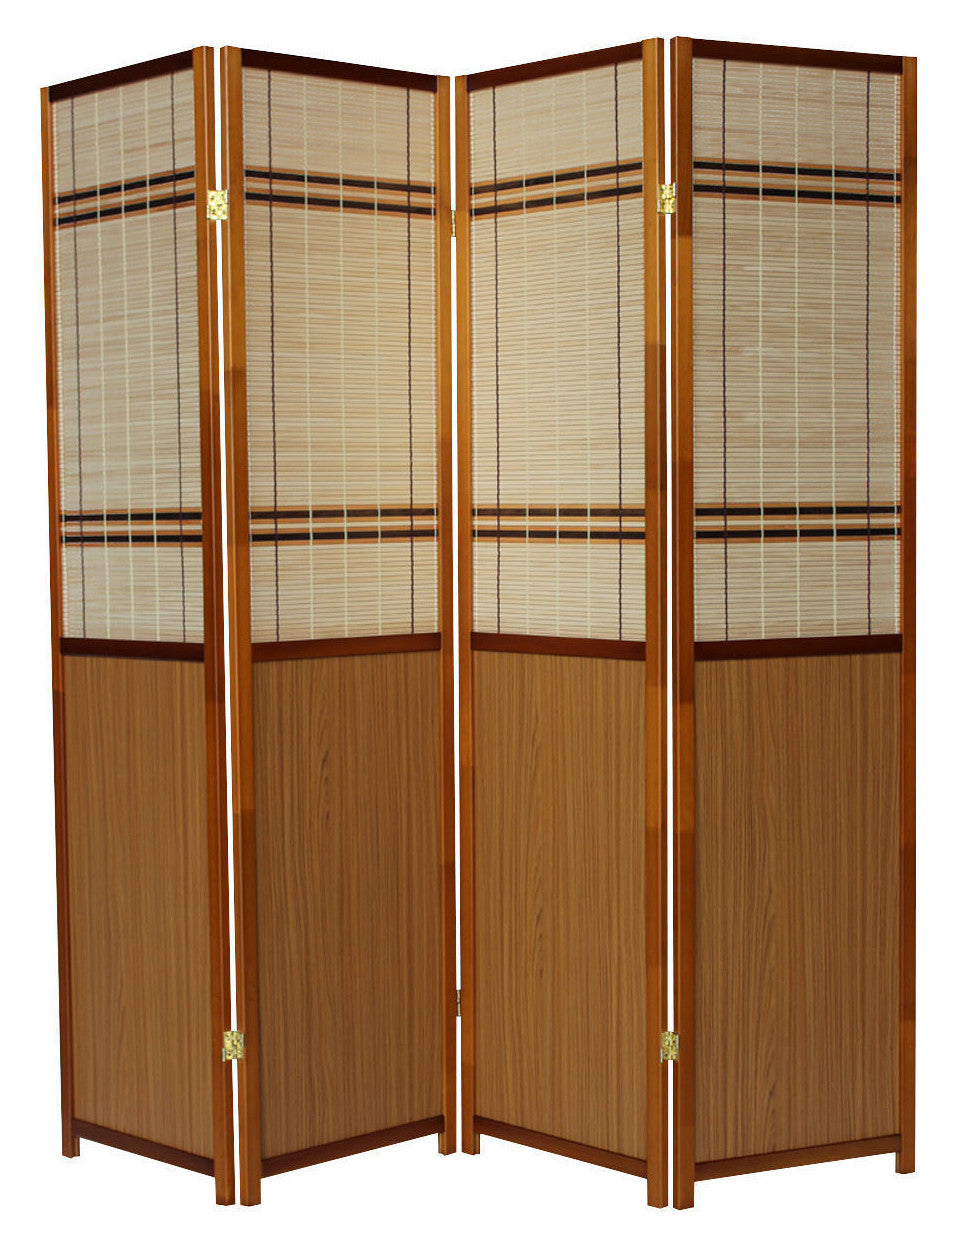 Oak Panel Room Divider Screen - 4 Panel